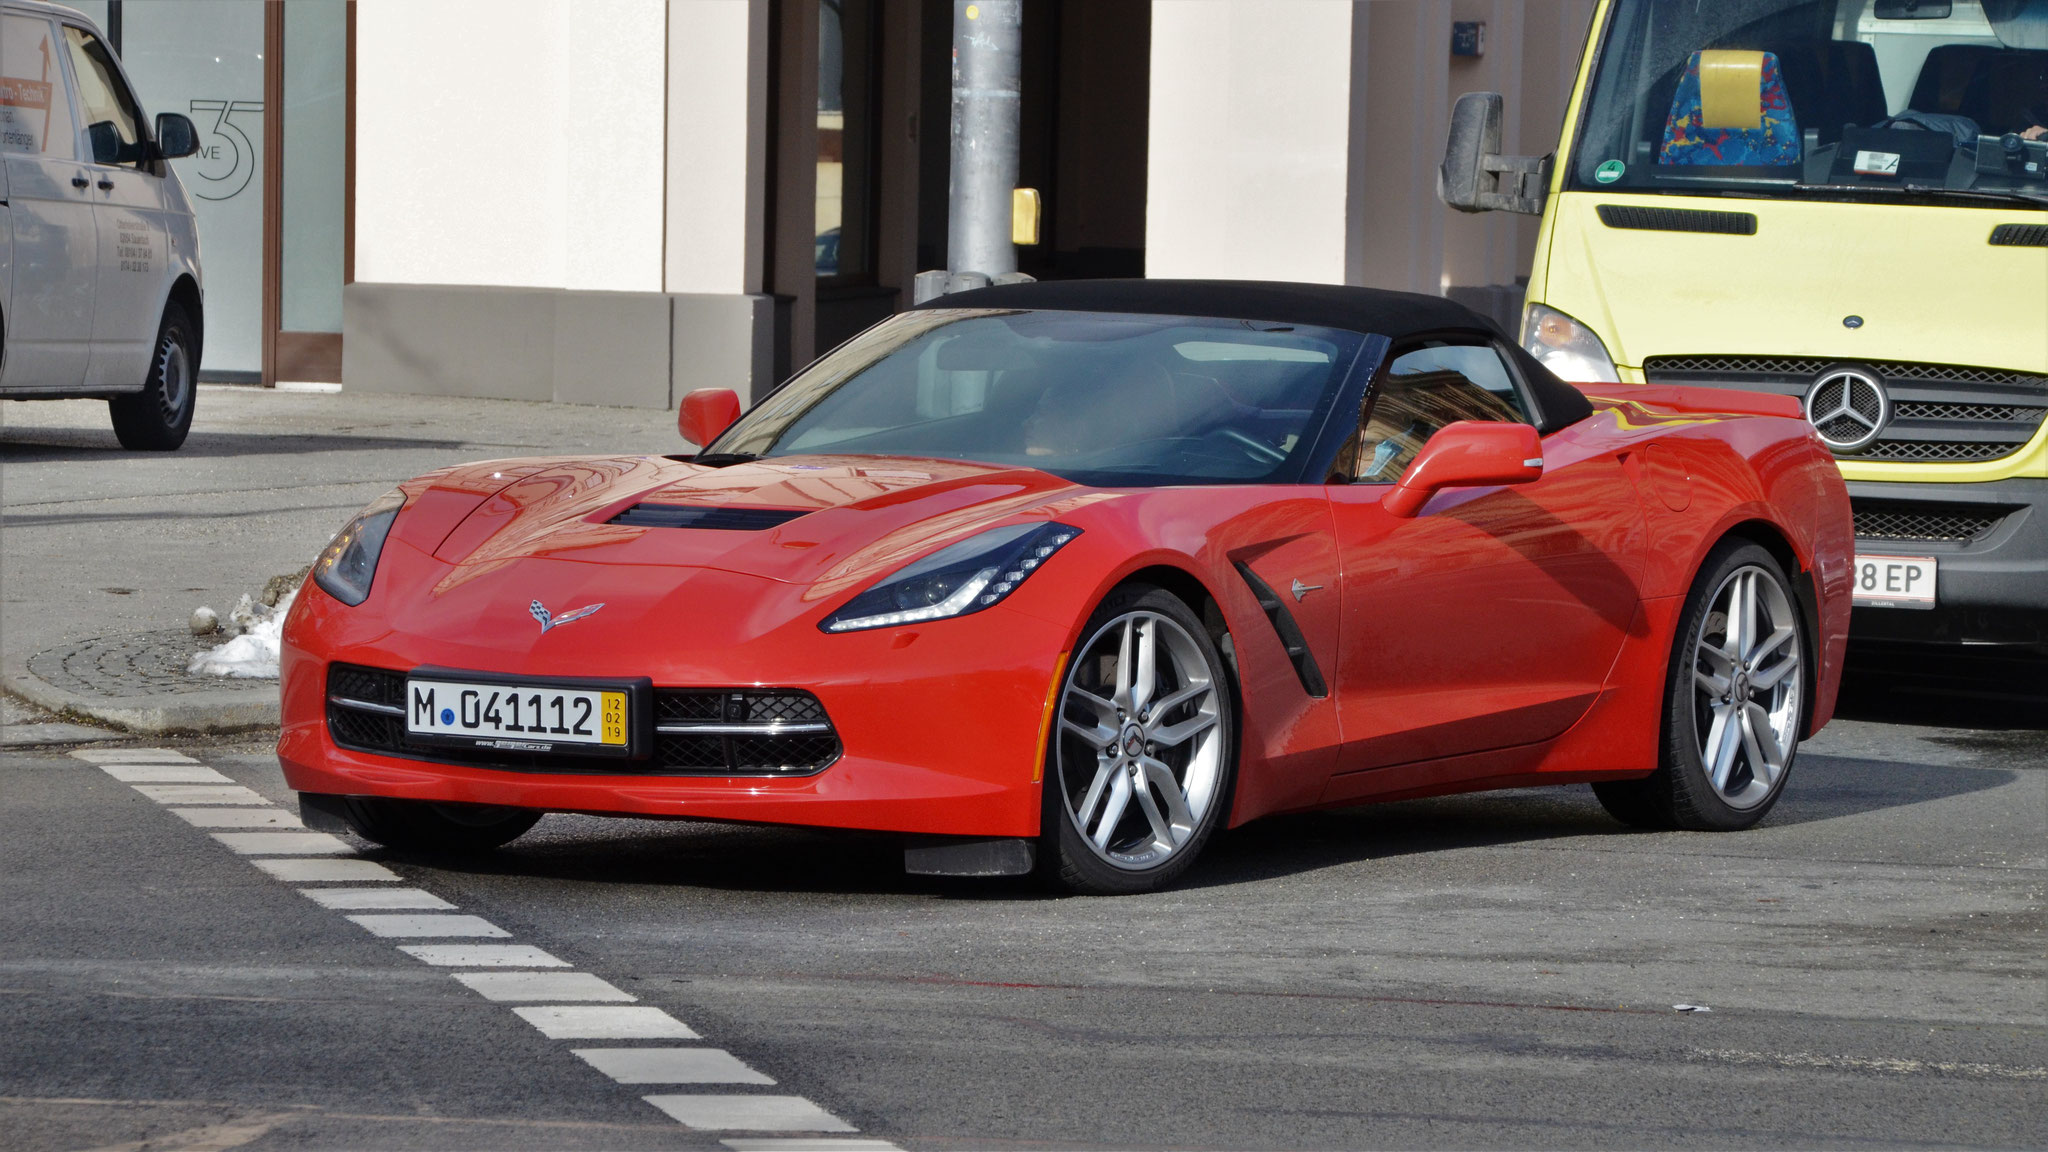 Chevrolet Corvette C7 Convertible - M-041112